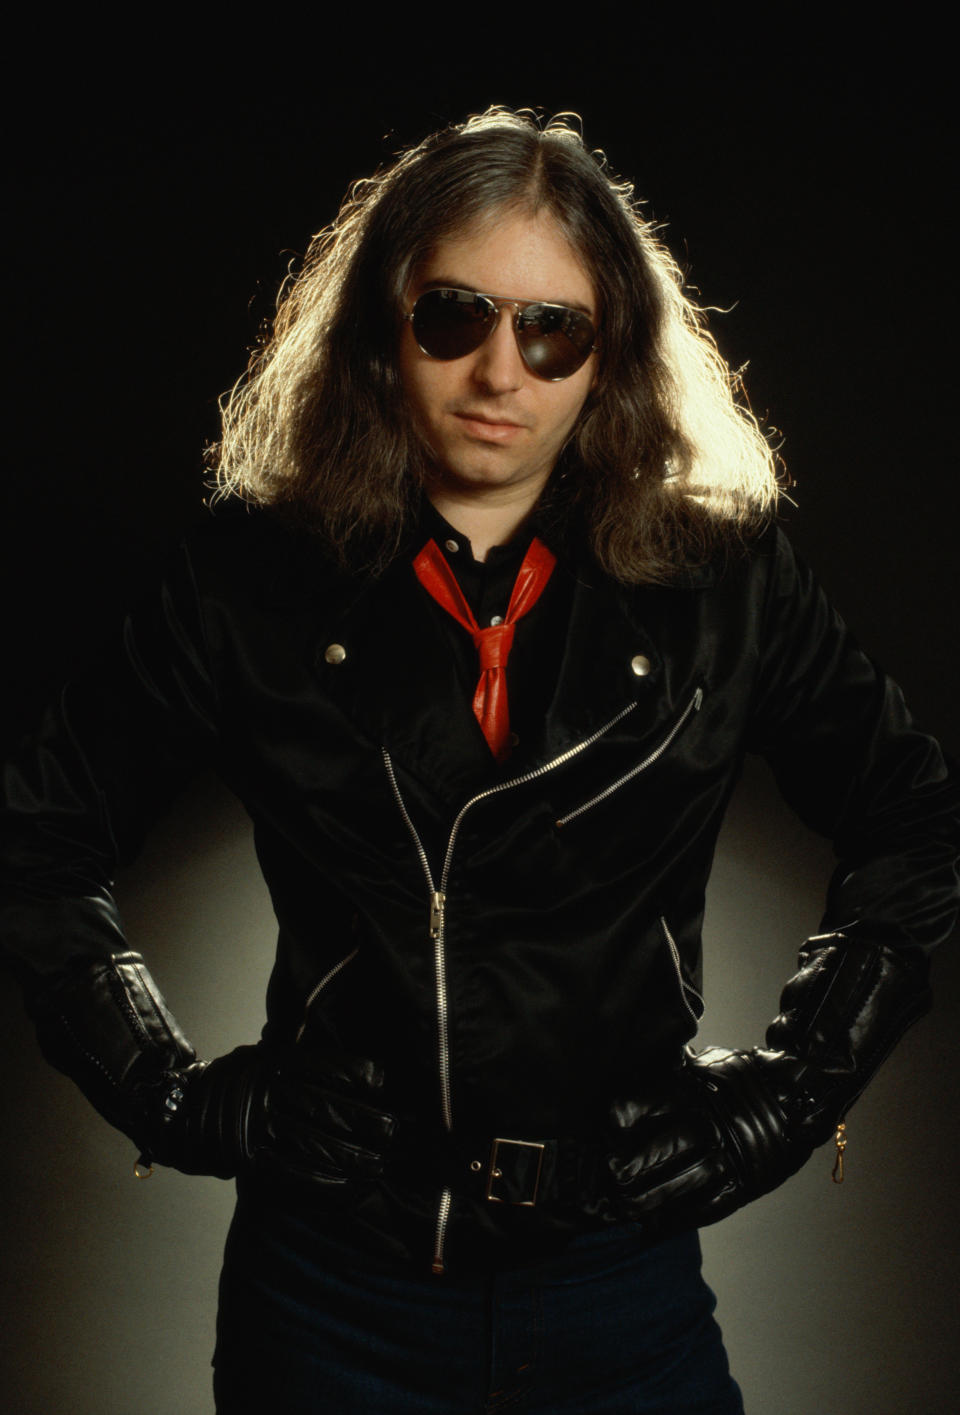 Jim Steinman in 1981 (Photo: Terry Lott/Sony Music Archive via Getty Images)